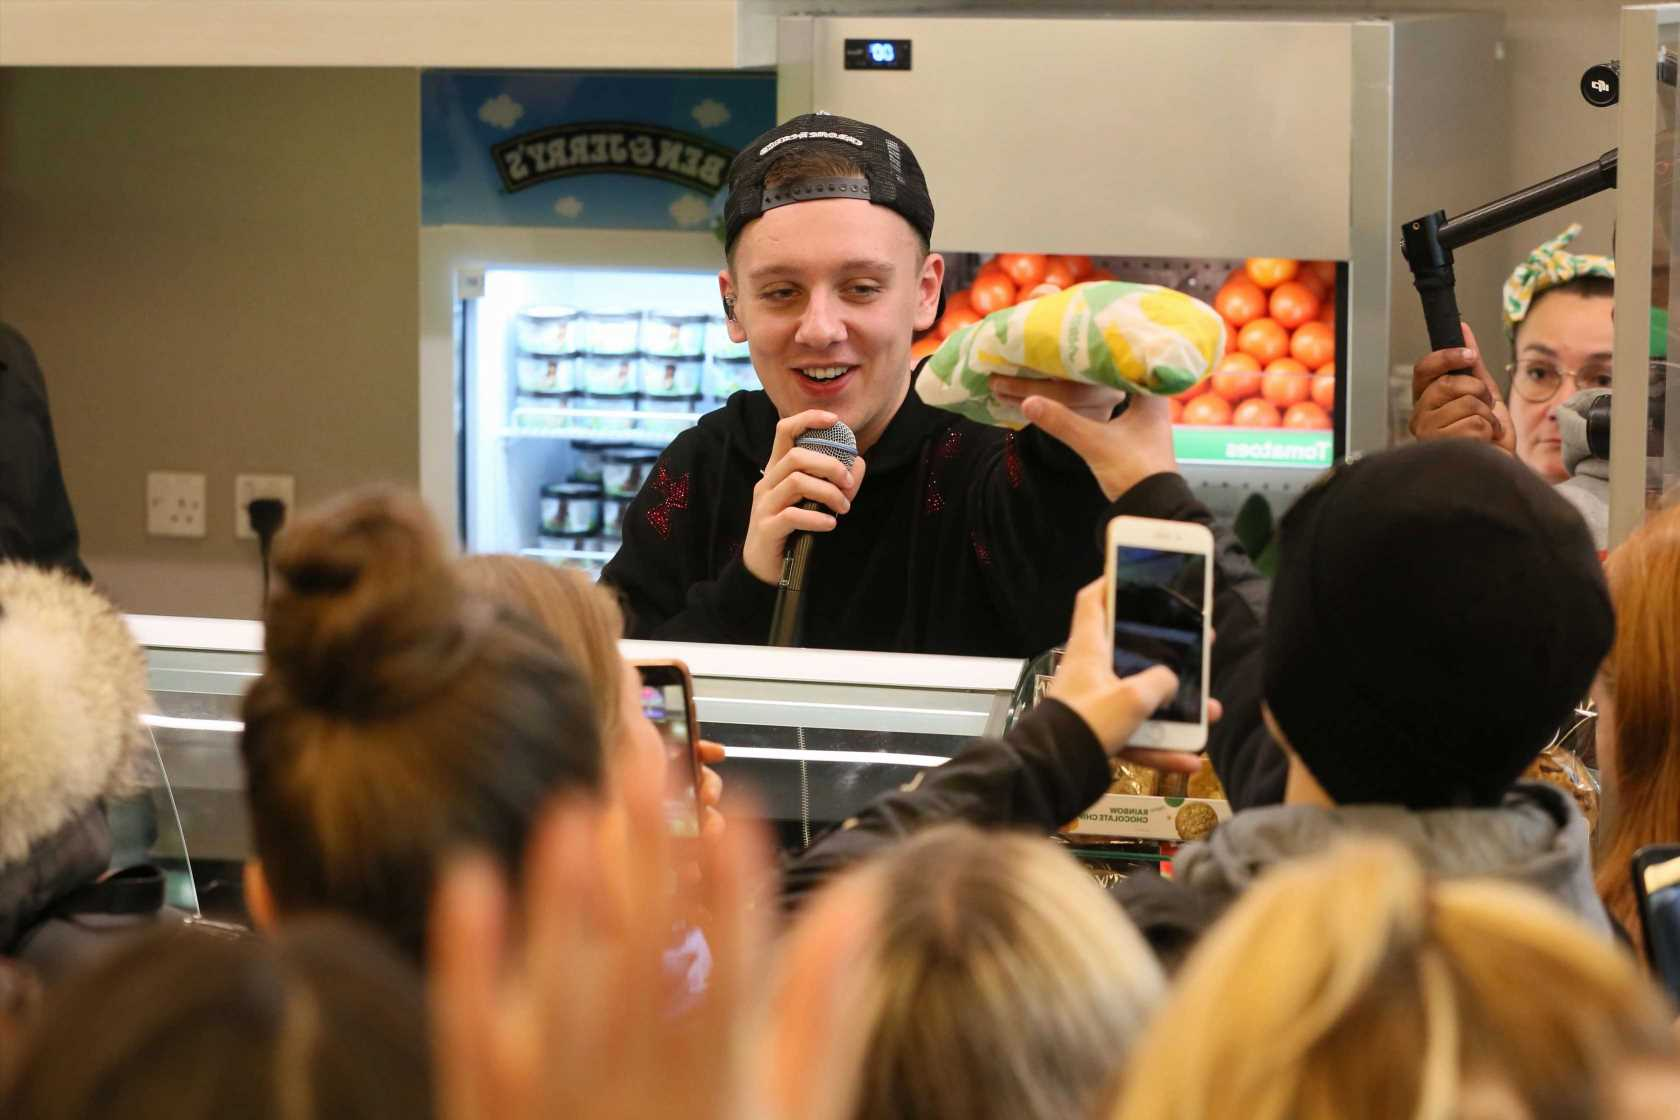 Rapper Aitch shocks fans as he performs surprise gig in Subway